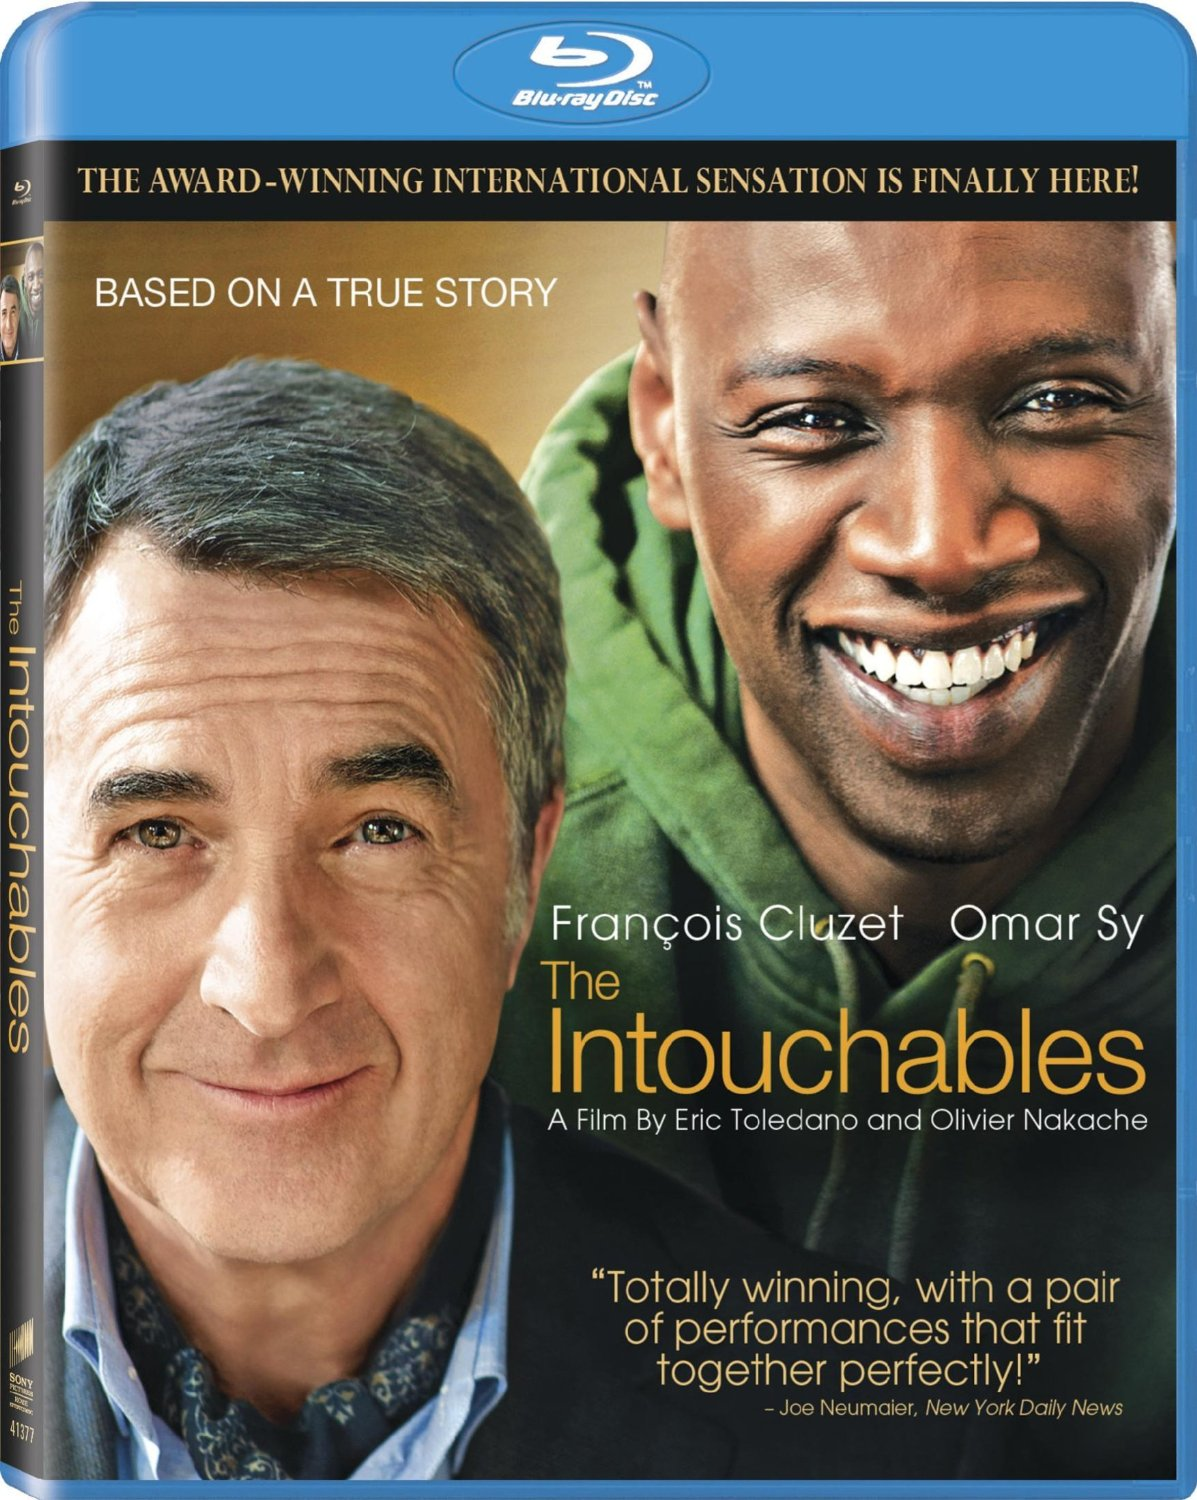 """the intouchables"" a film of true humanity Already a huge hit in europe, france's crowd-pleasing the intouchables seems destined to repeat its success here written and directed by eric toledano and olivier nakache, it's the factual story of an unconventional relationship between a millionaire quadriplegic from the ritziest neighborh."